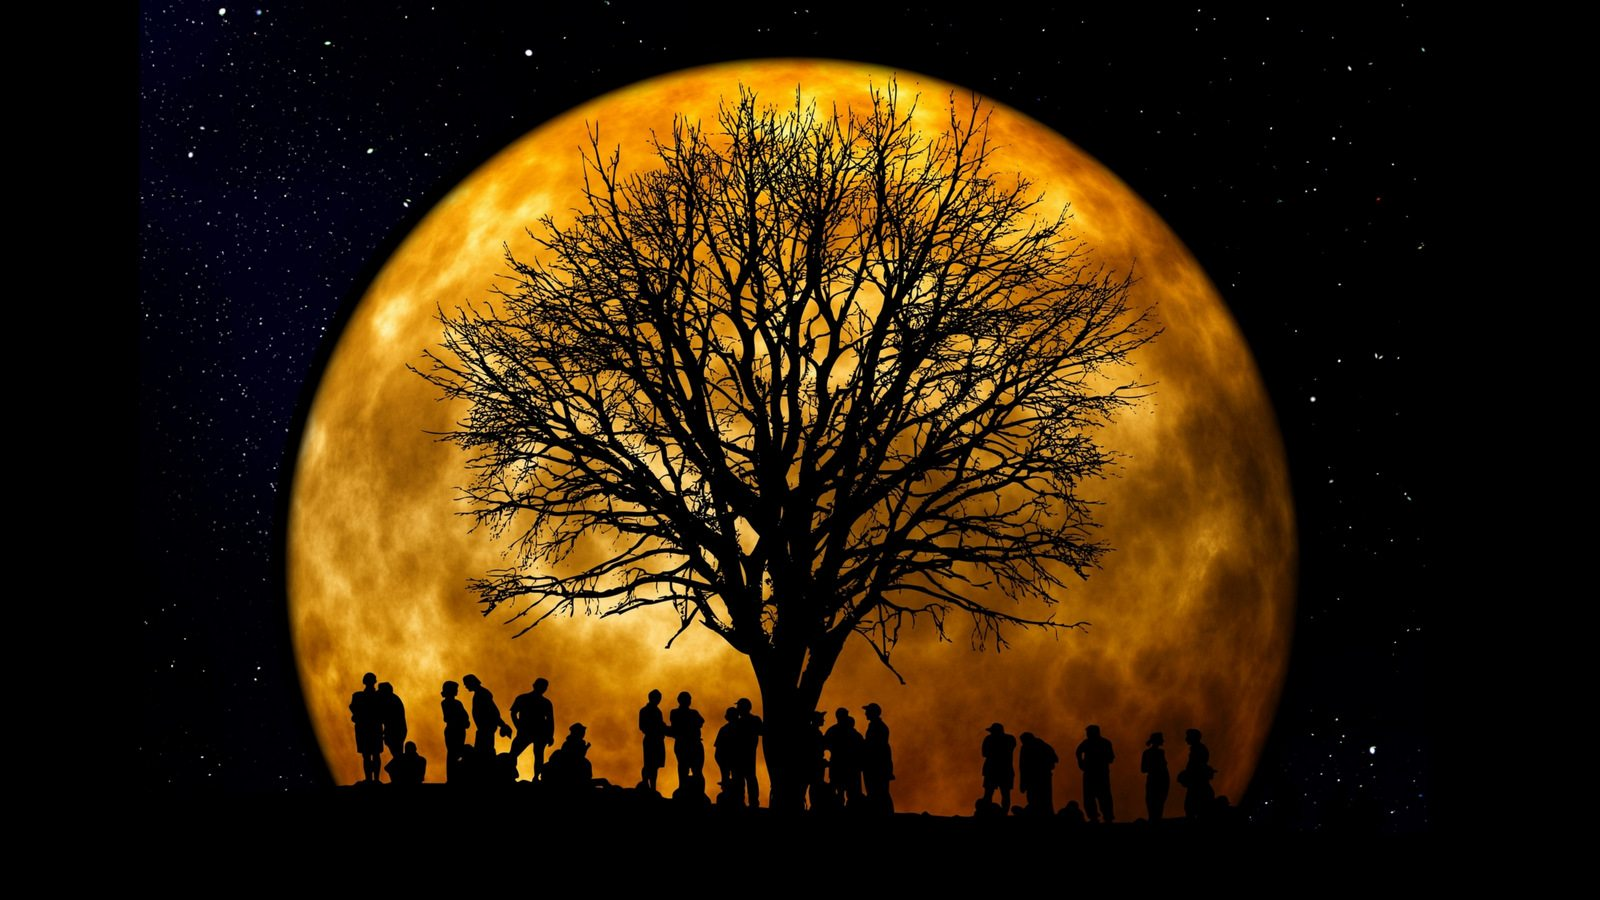 Image: An enormous orange full moon rises behind the black silhouettes of a great tree and a group of people